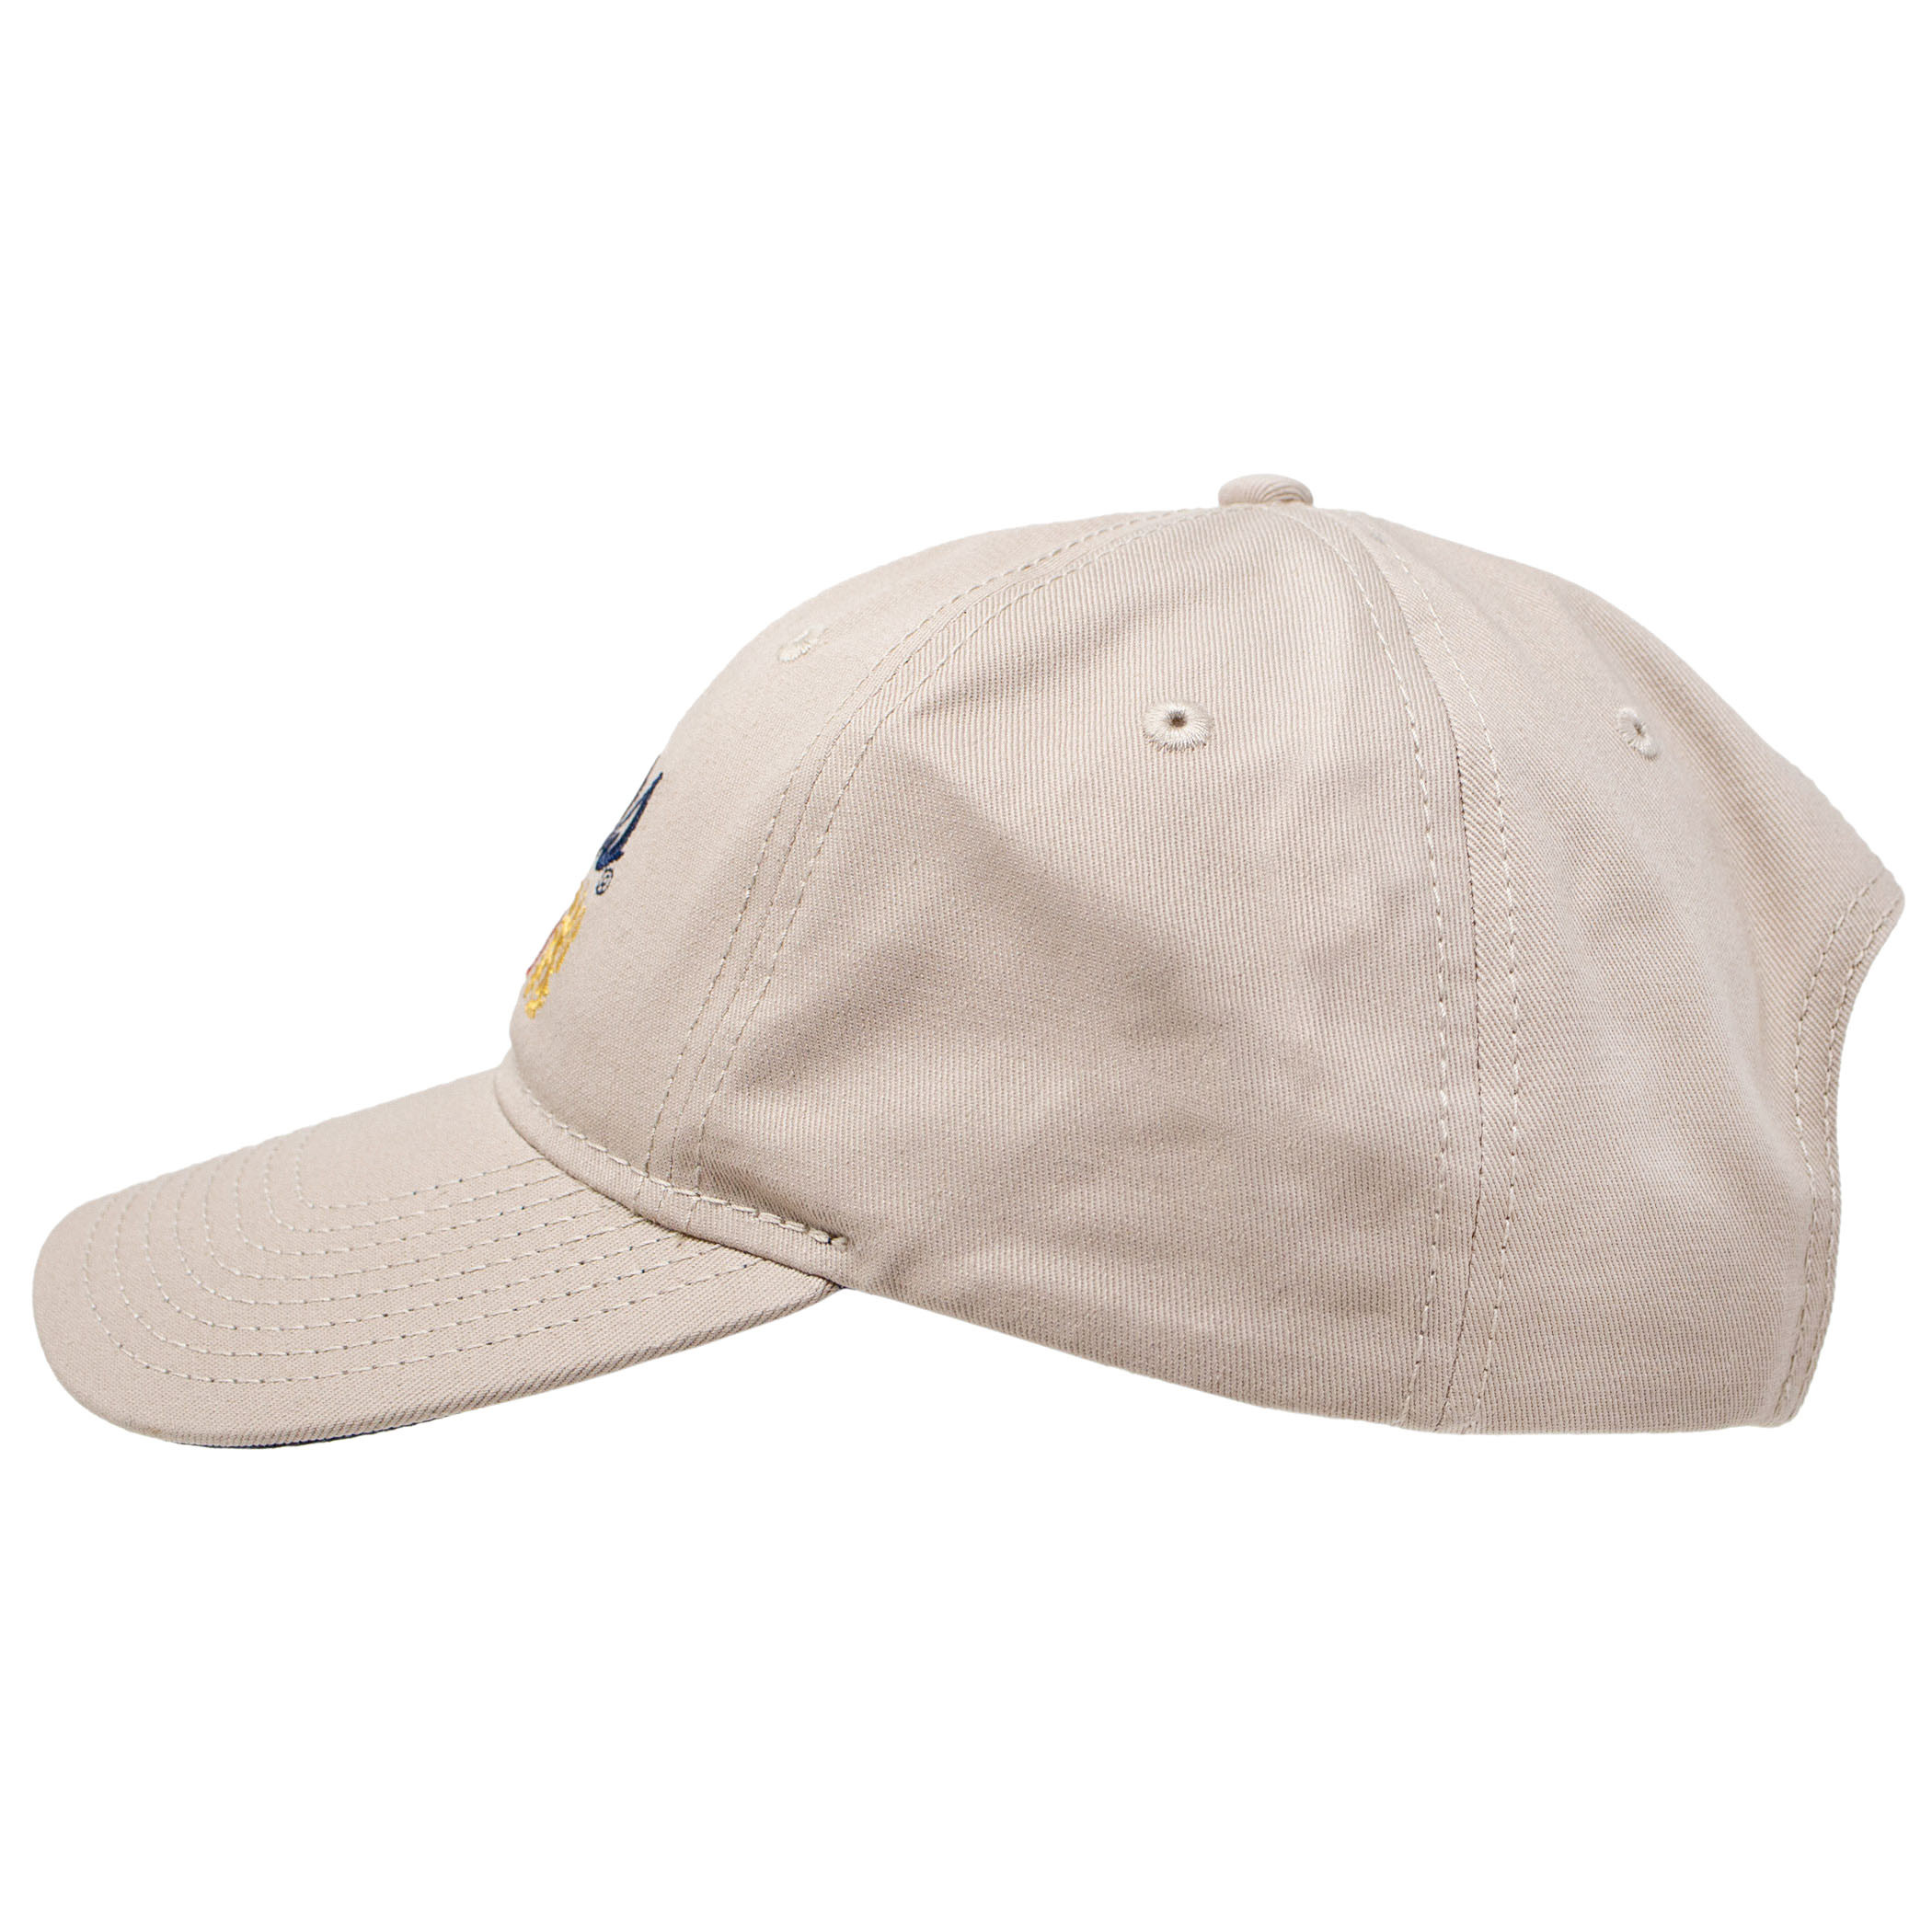 Coors Banquet Beer Logo Adjustable Khaki Hat